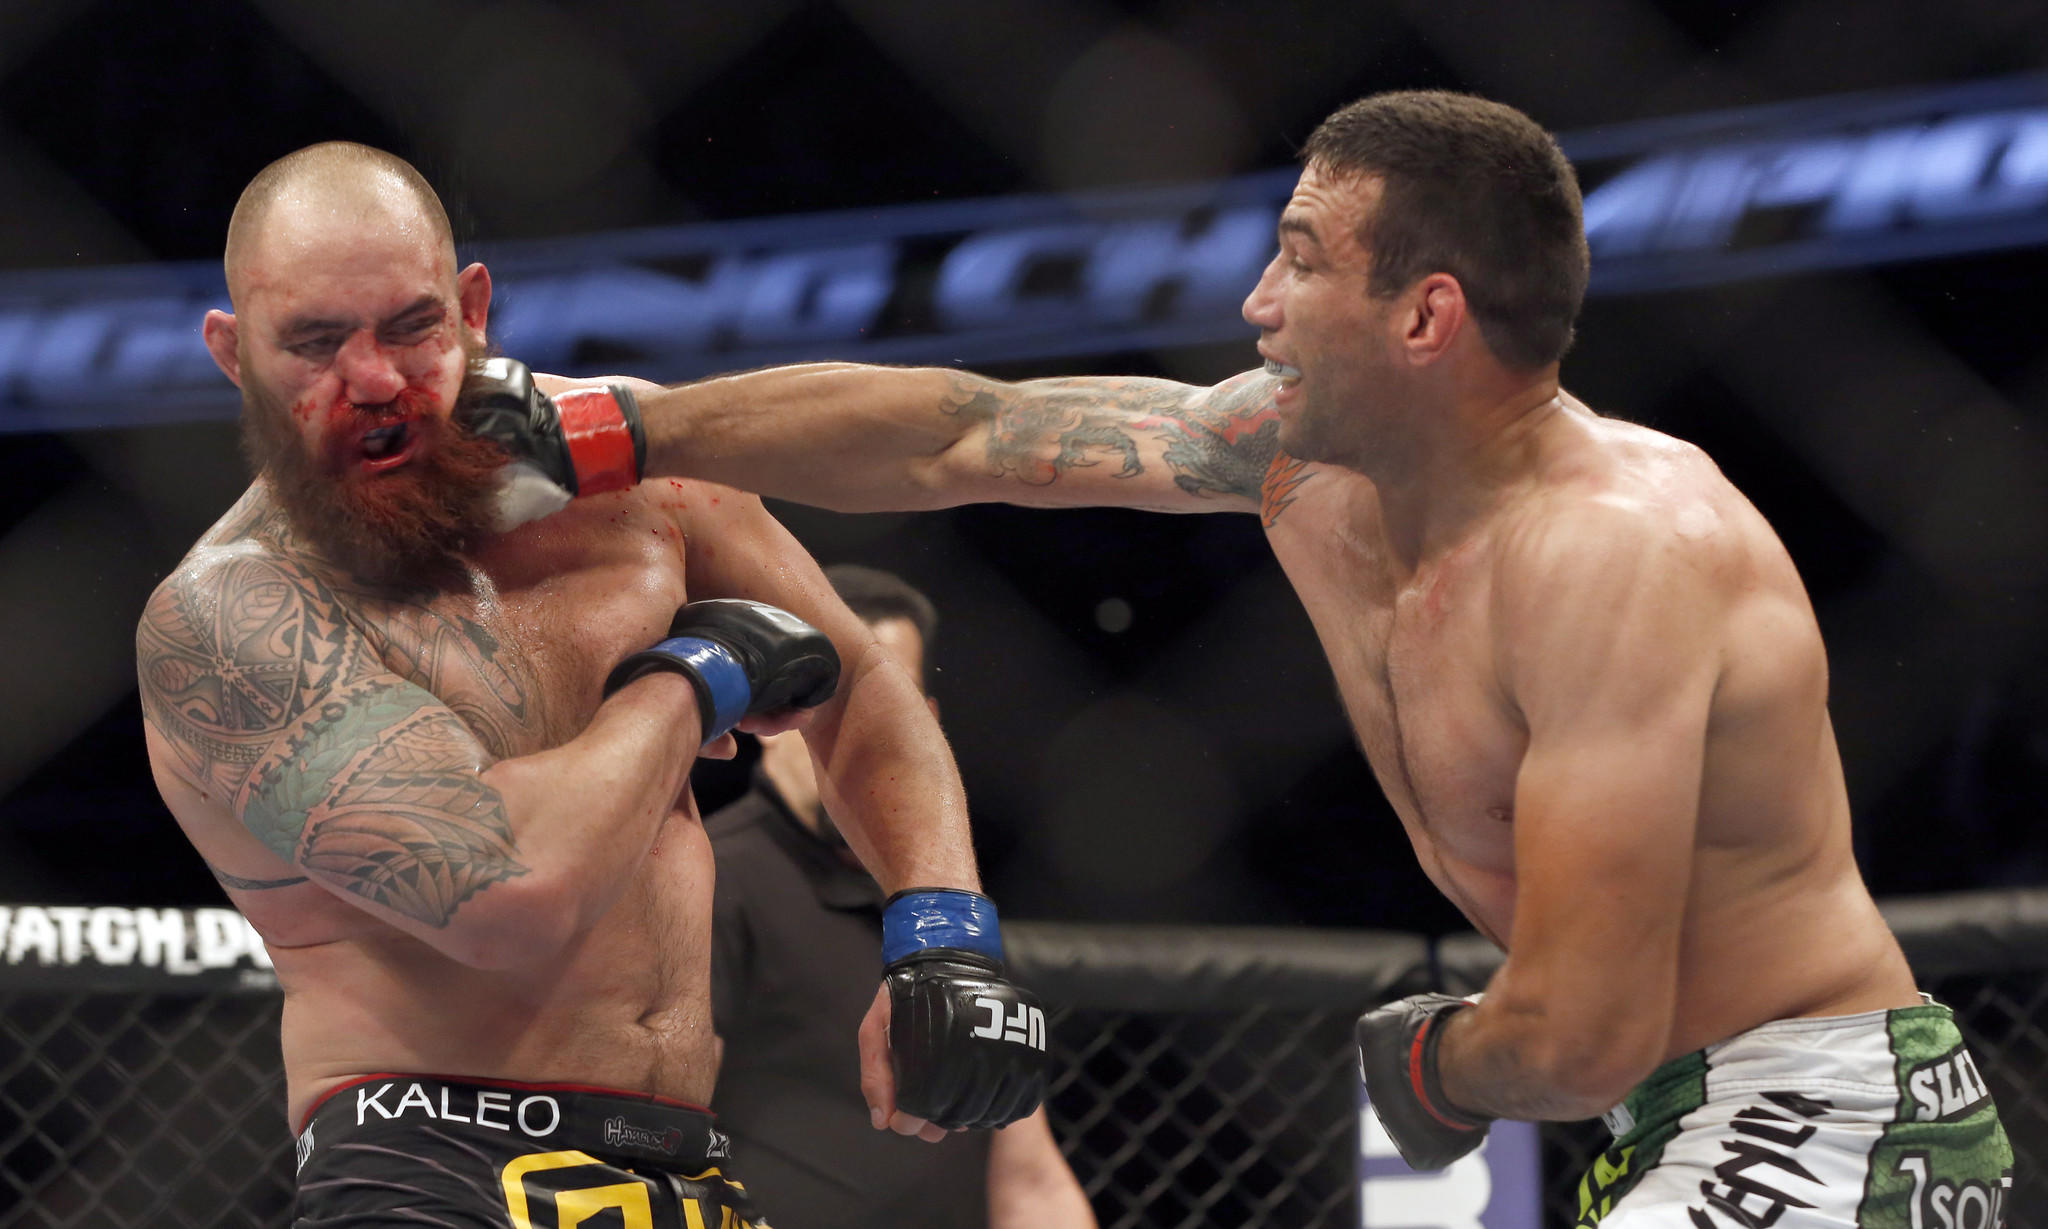 Fabricio Werdum, right, hits Travis Browne during their UFC bout on Saturday.